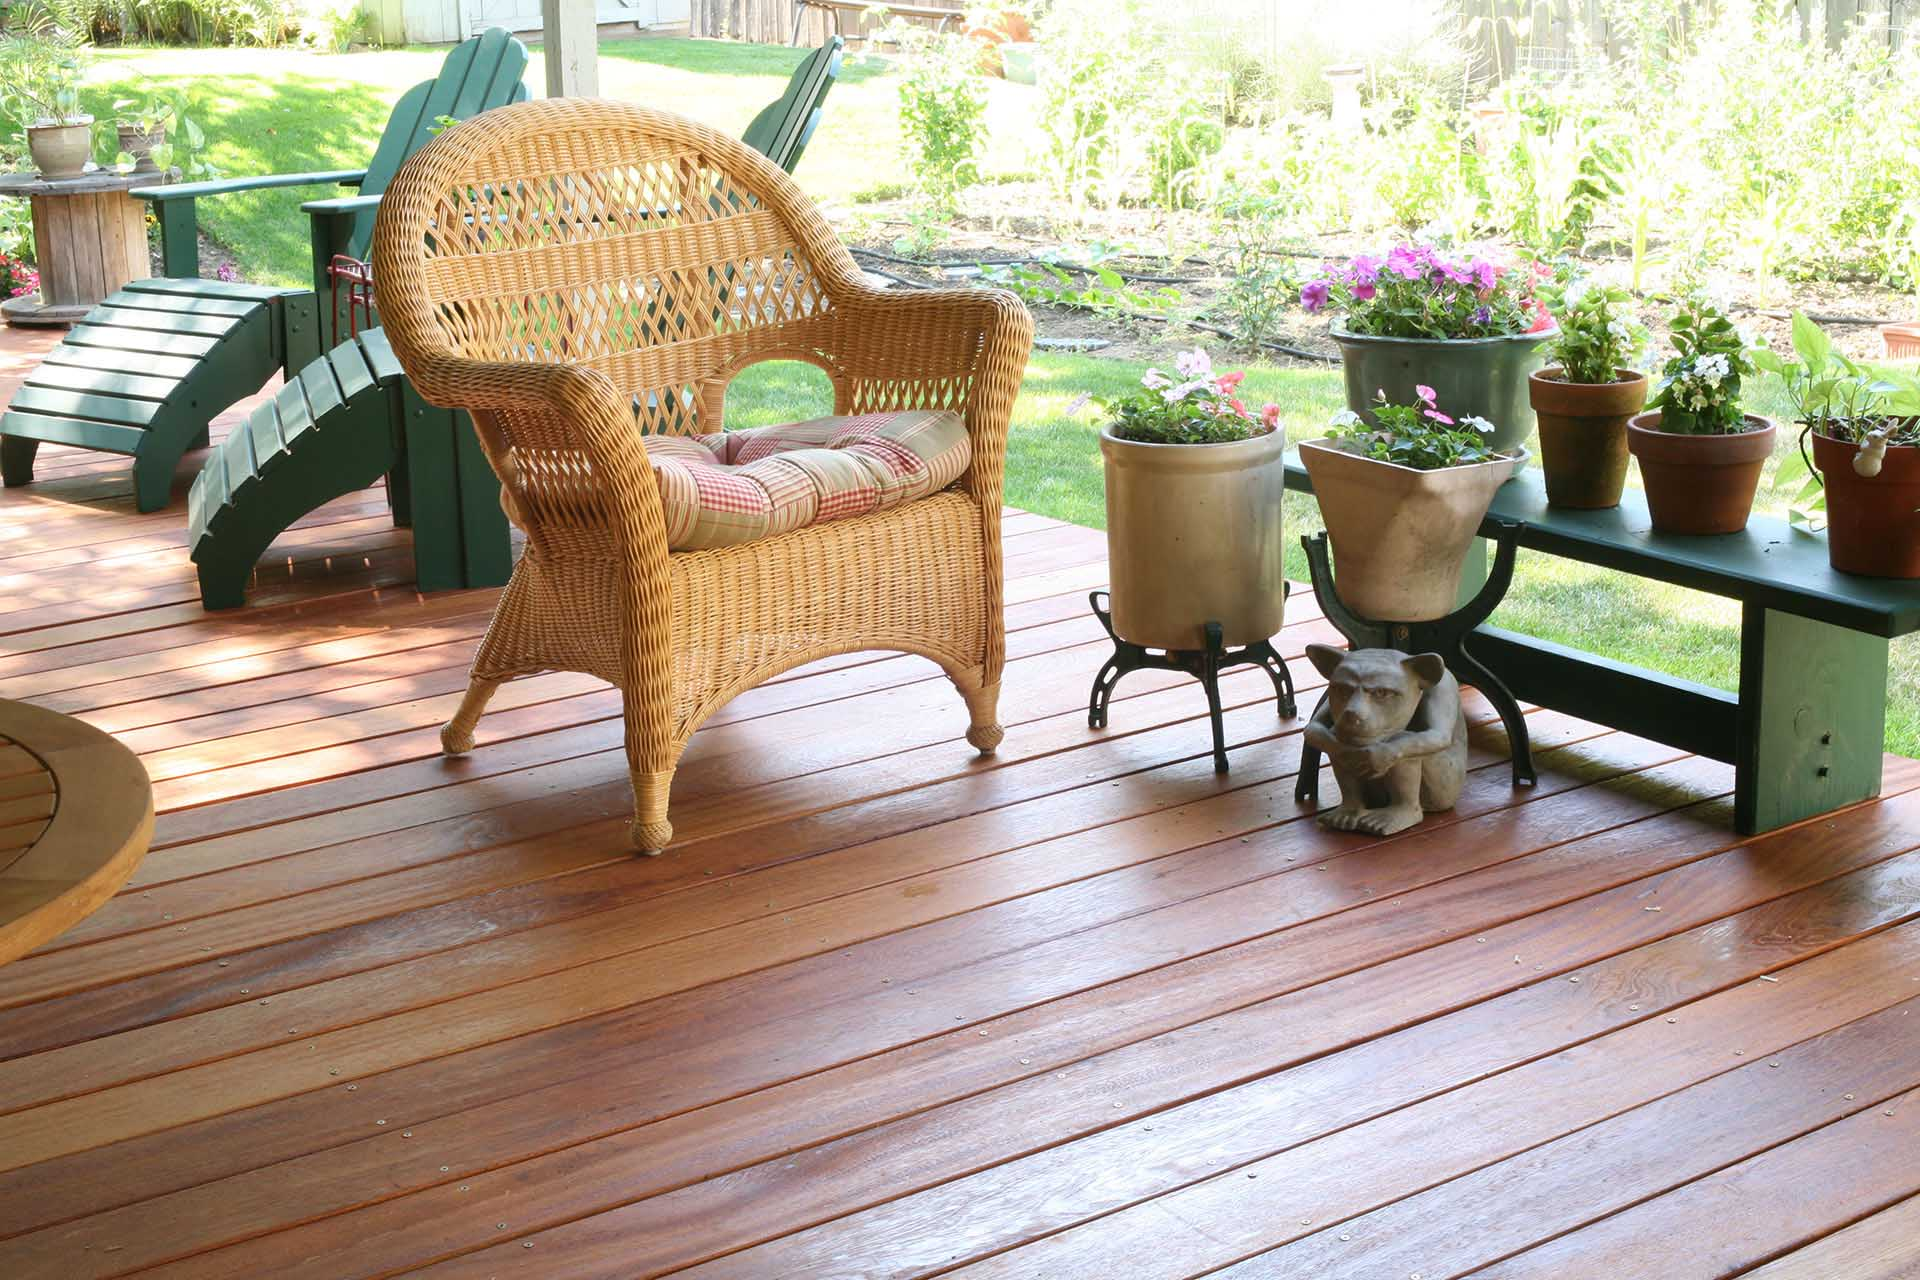 Hardwood_Decking_angelim-pedra-hardwood-deck-with-gargoyle.jpg